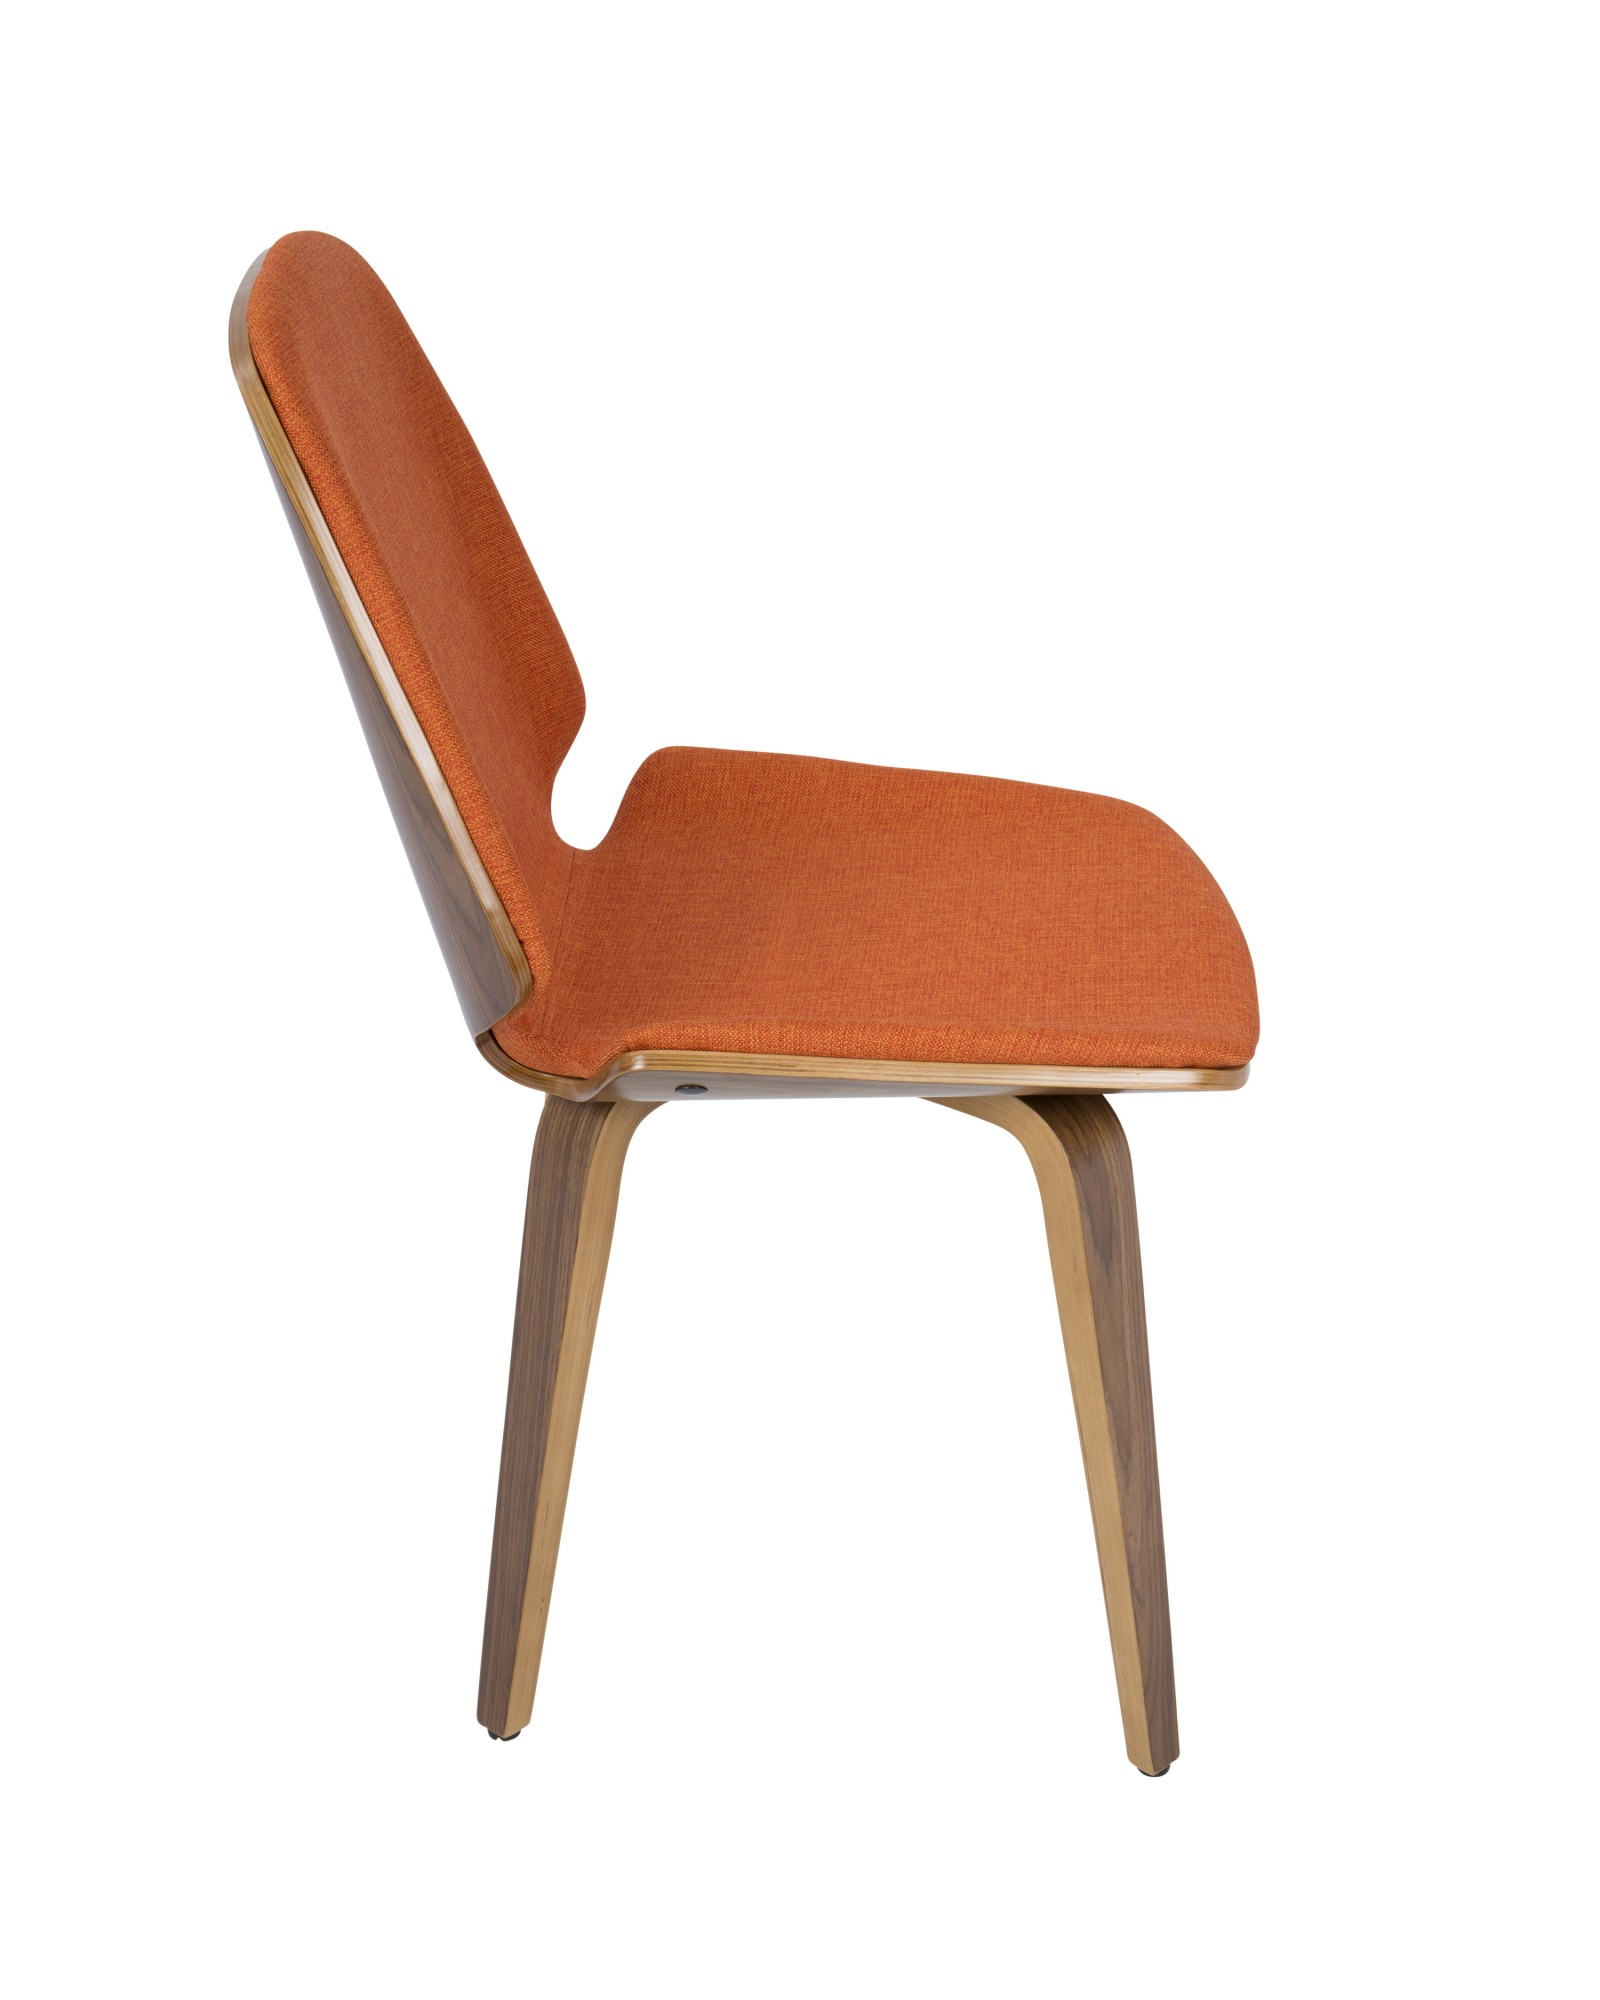 Serena Mid-Century Modern Dining Chair in Walnut with Orange Fabric - Set of 2